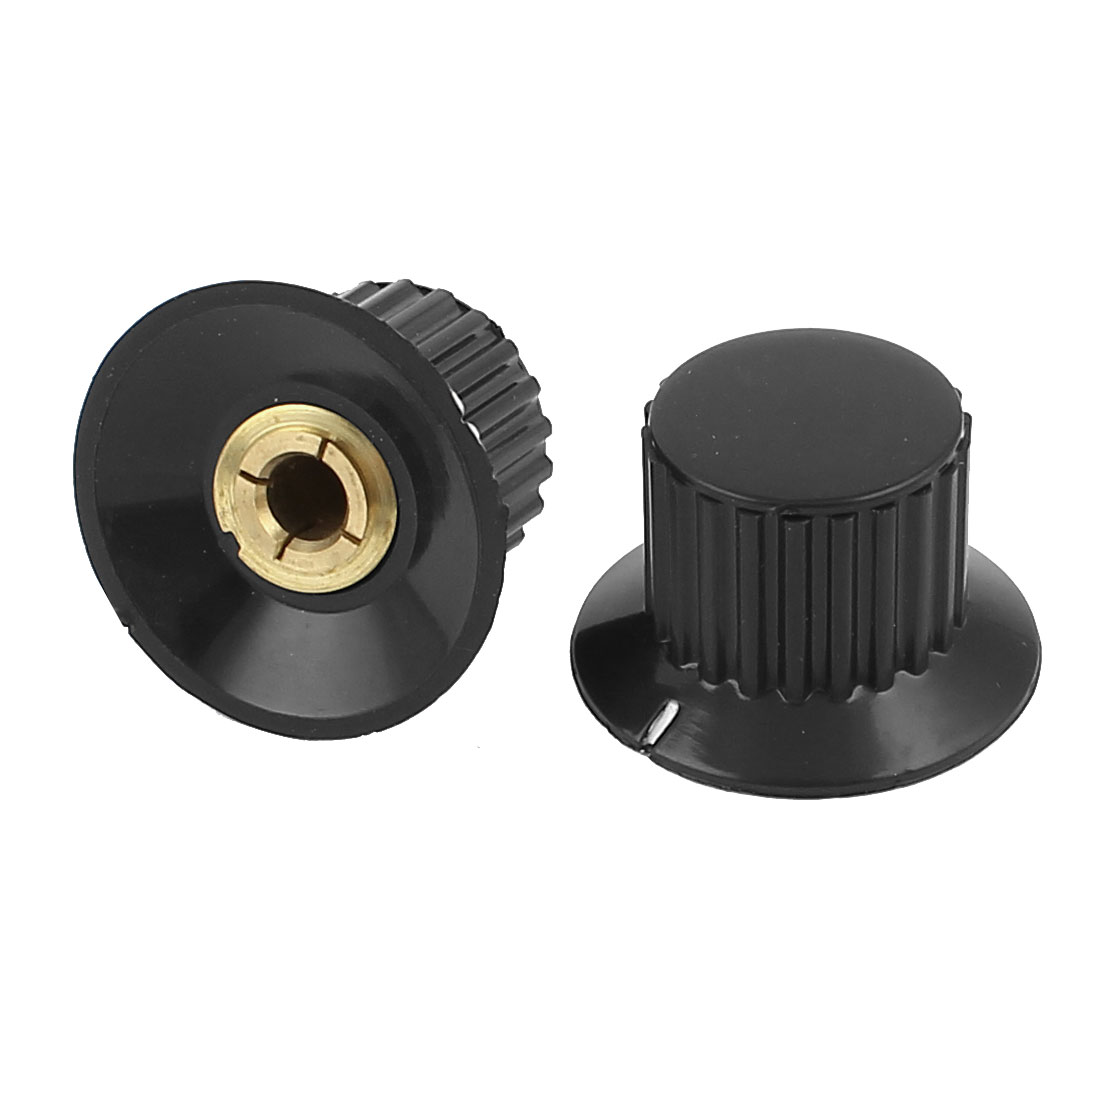 "22mm Top Dia 1/4"" Shaft Potentiometer Volume Control Knobs 2 Pcs"